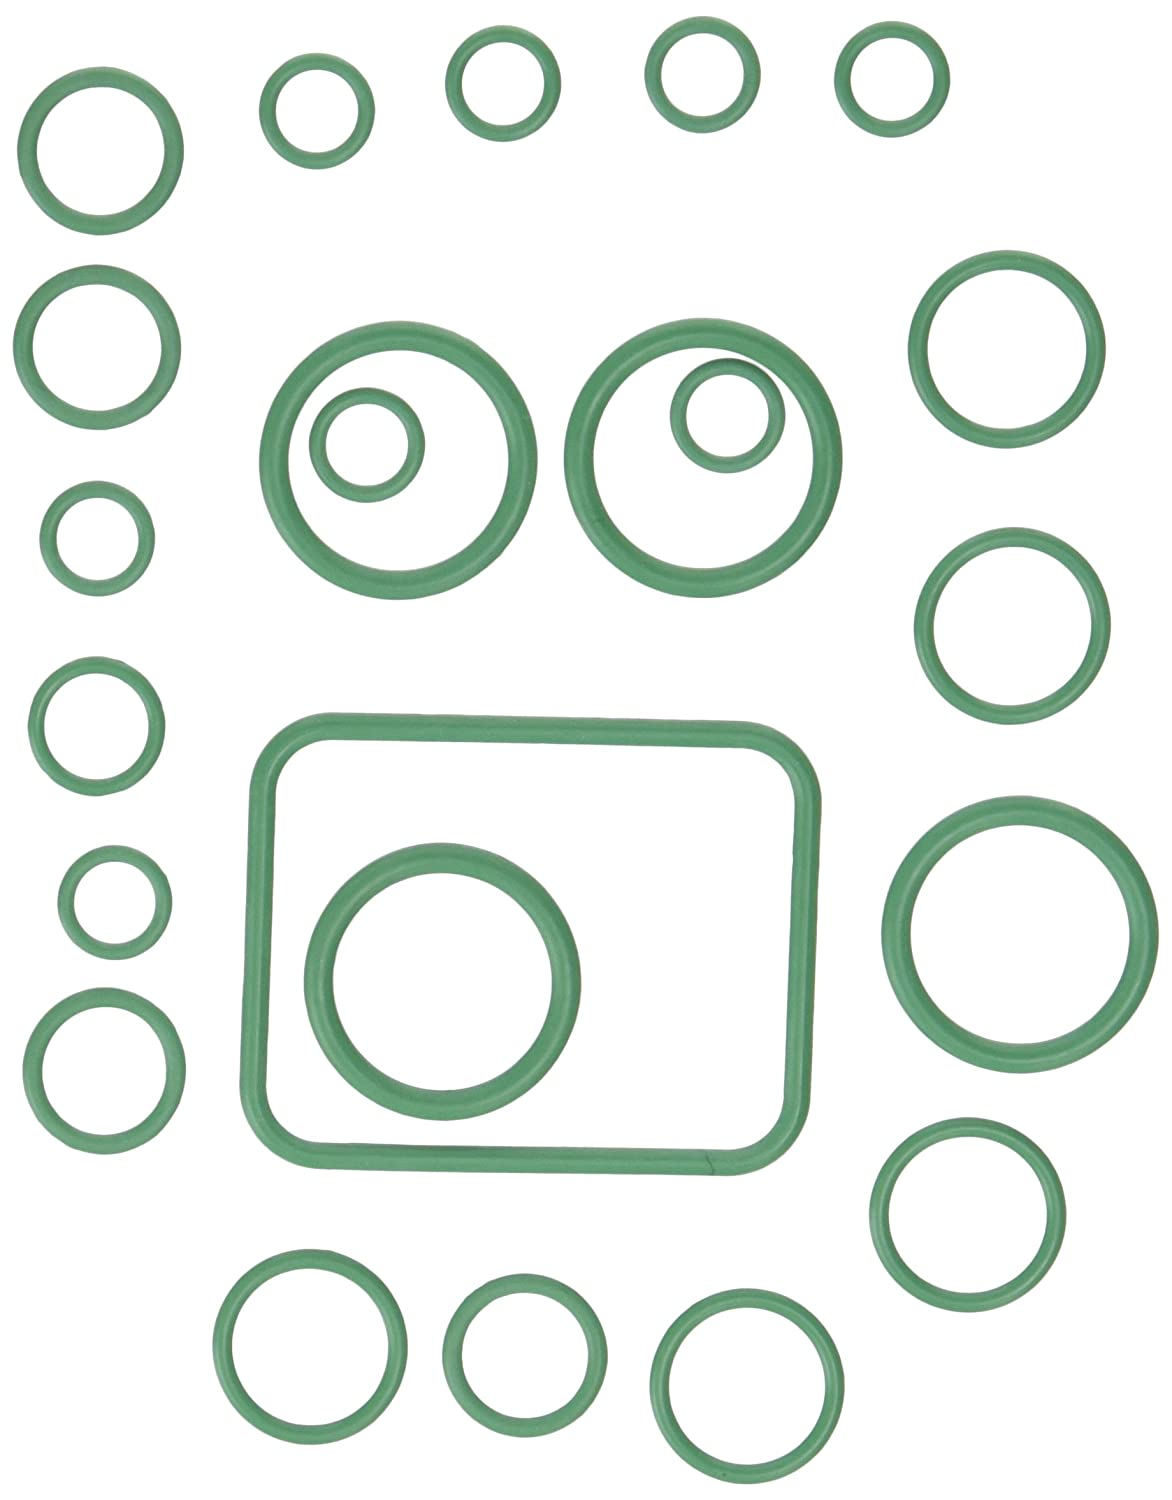 Four Seasons 26751 O-Ring & Gasket Air Conditioning System Seal Kit FS26751